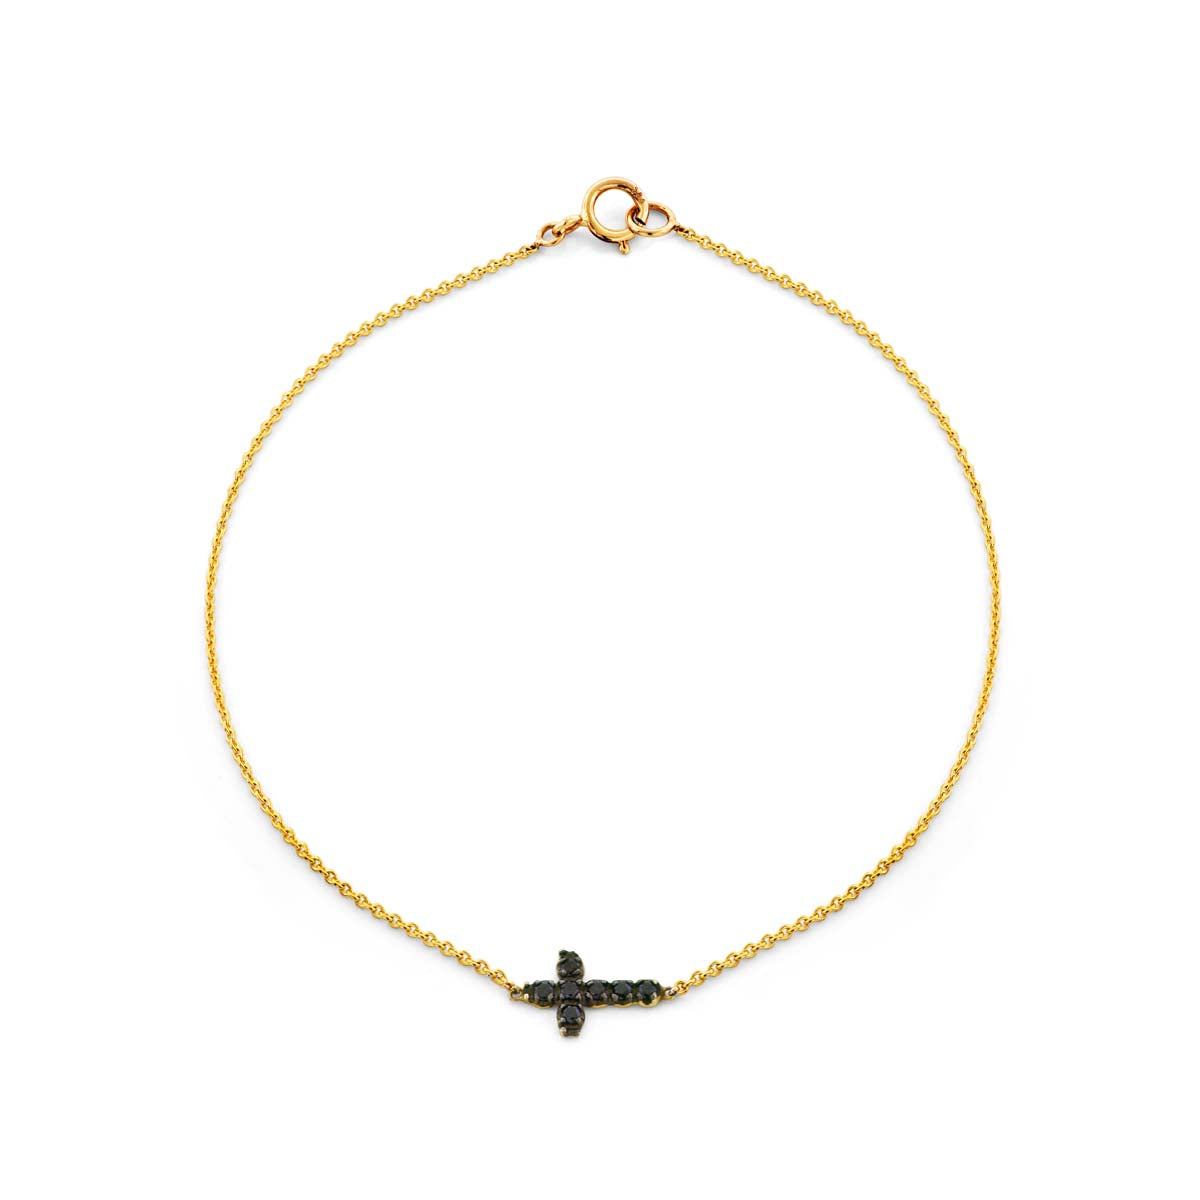 Image of a black diamond cross bracelet.